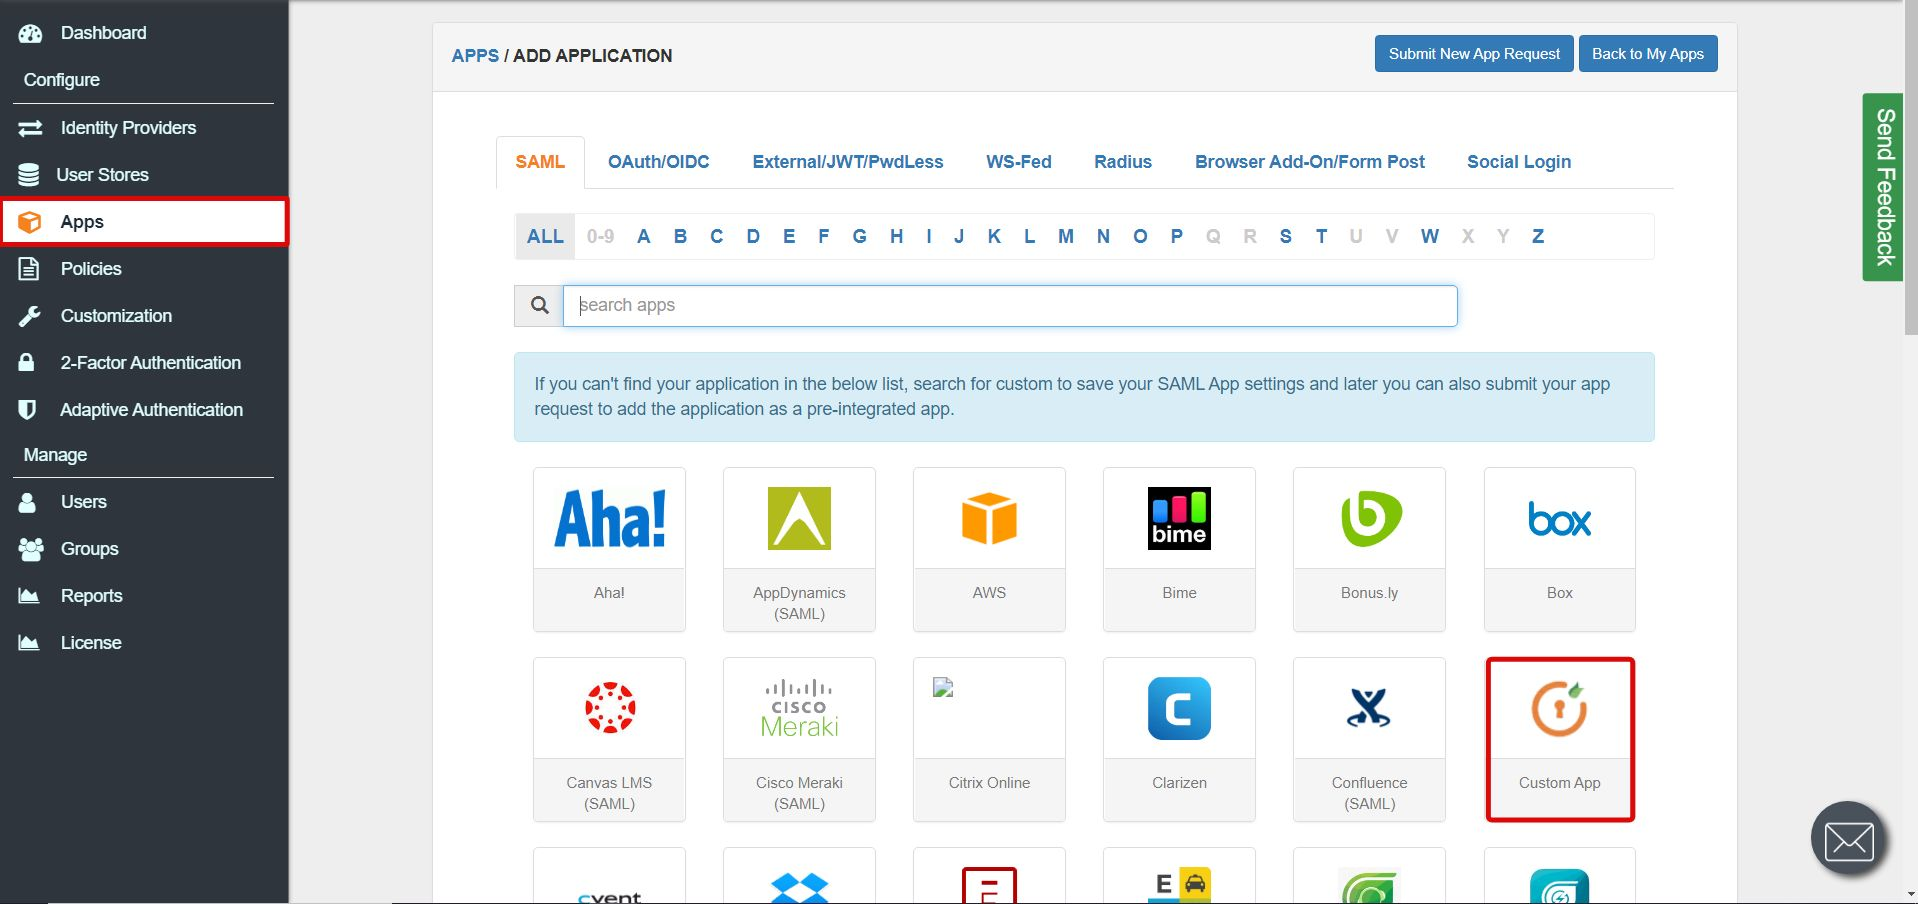 SAML tab Single Sign On for SAML Apps